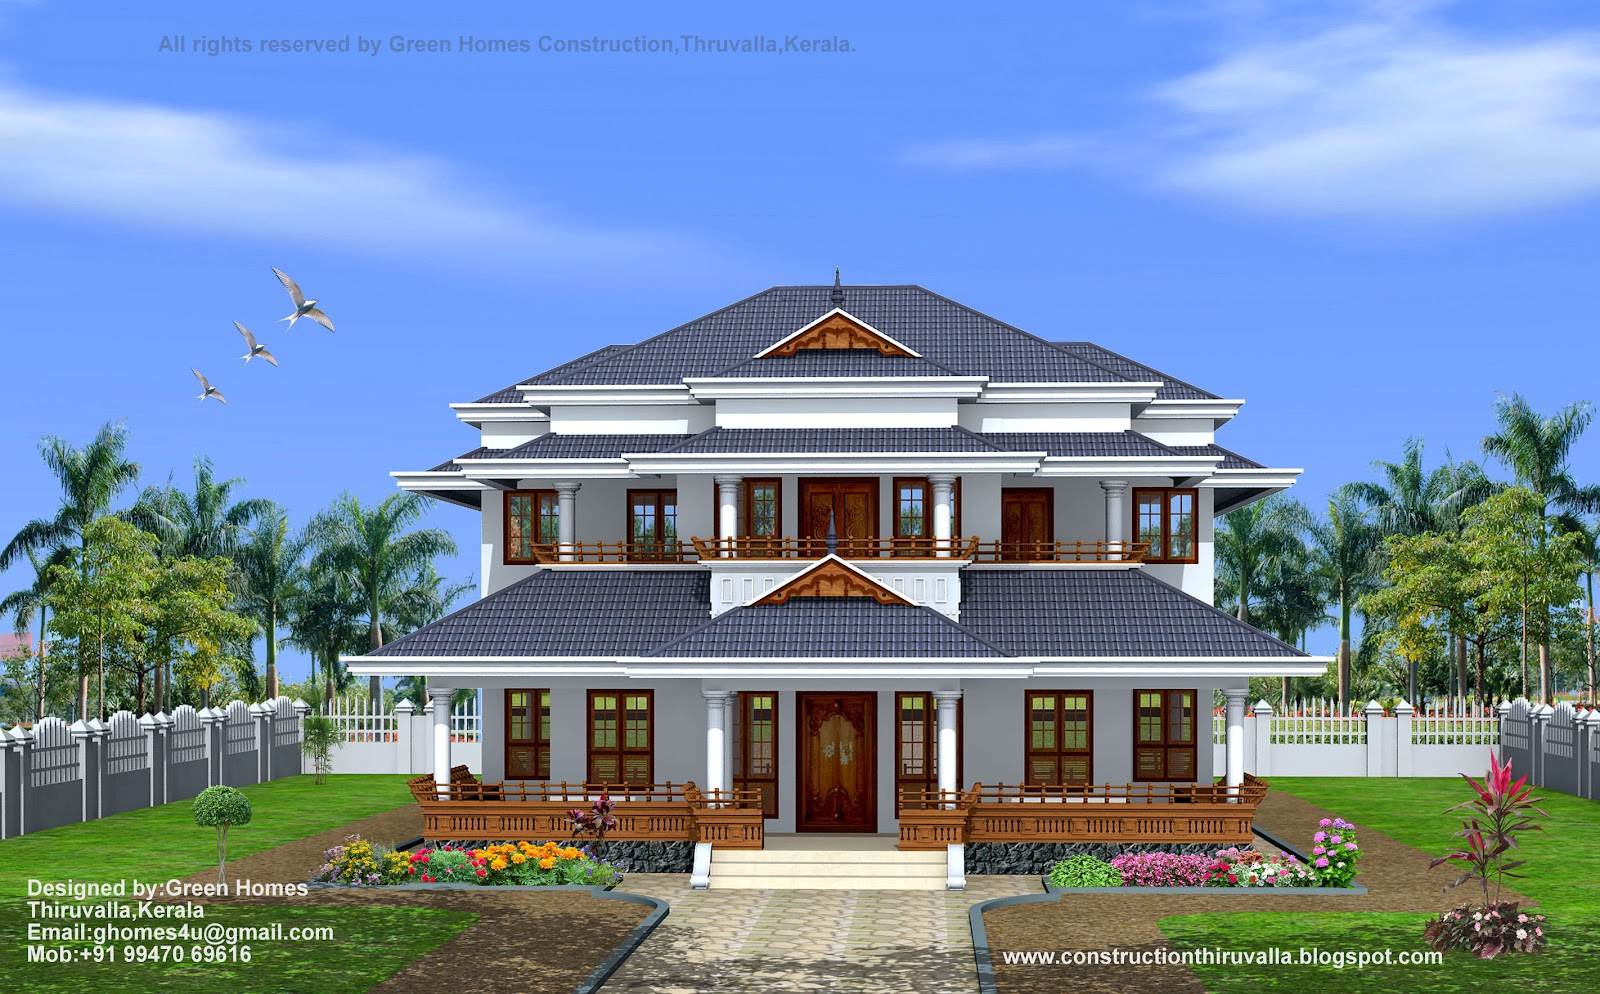 Green homes traditional style kerala home design 3450 sq feet for Green home designs